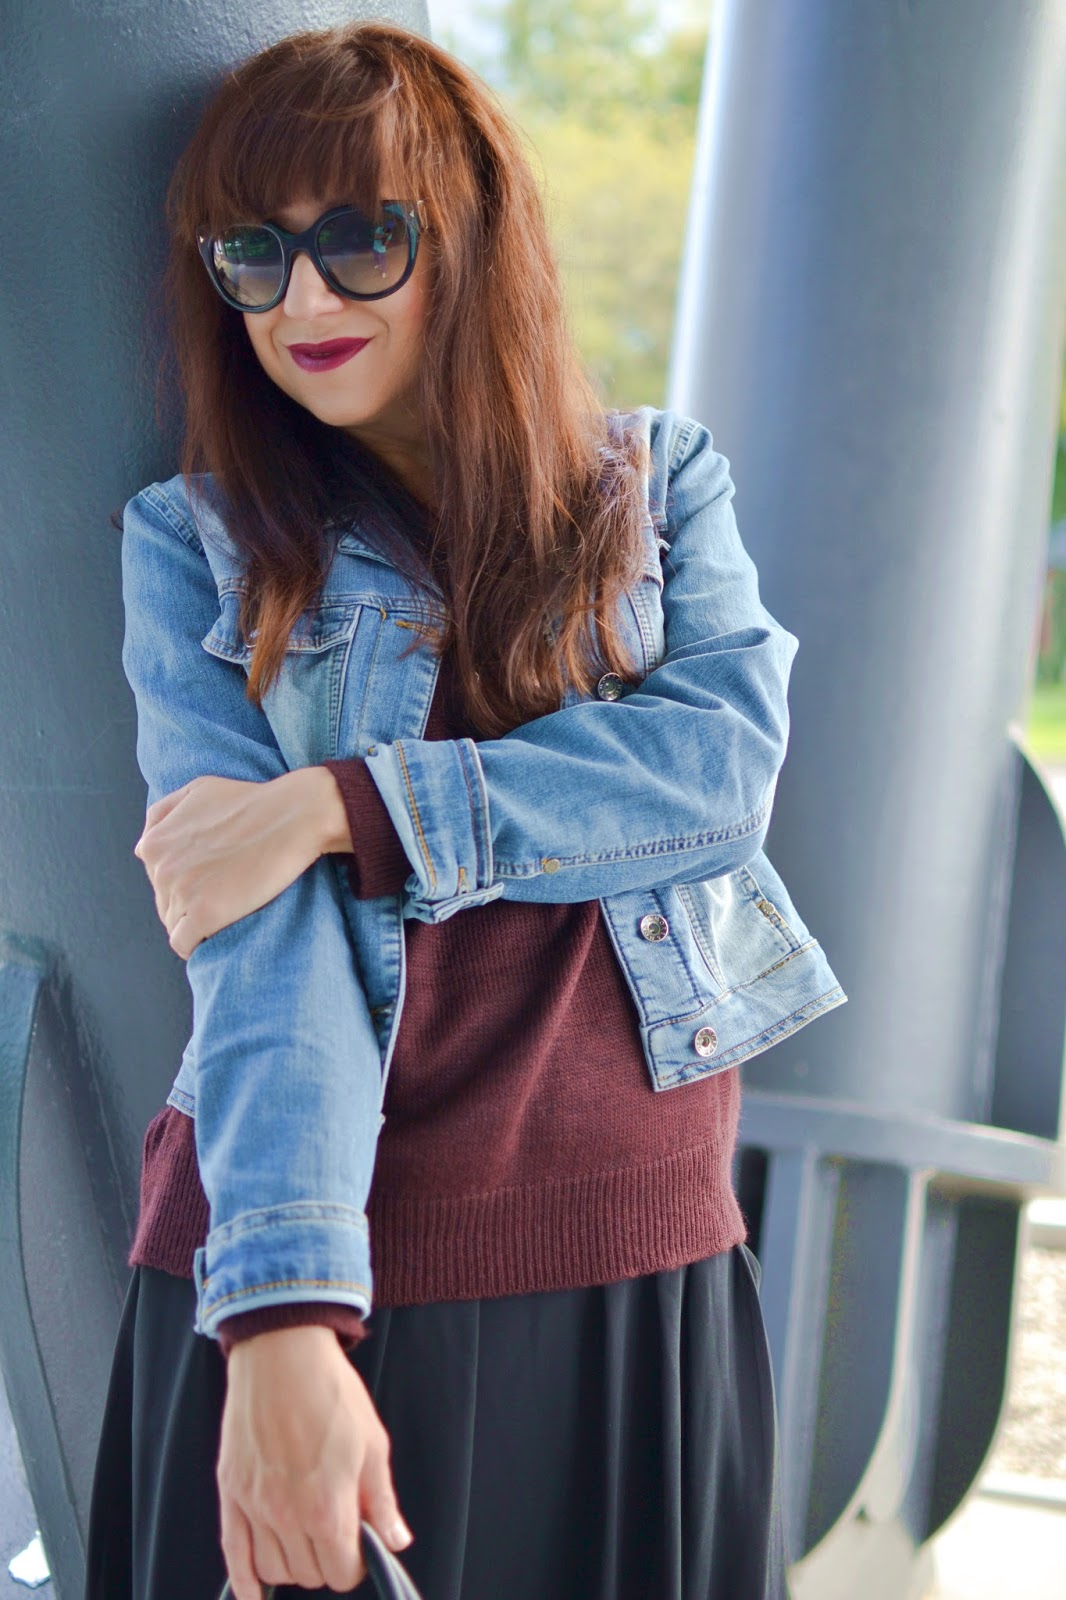 My first autumn look_Katharine-fashion is beautiful_Denim bunda_Zelené pančuchy_Rock style_Katarína Jakubčová_Fashion blogger